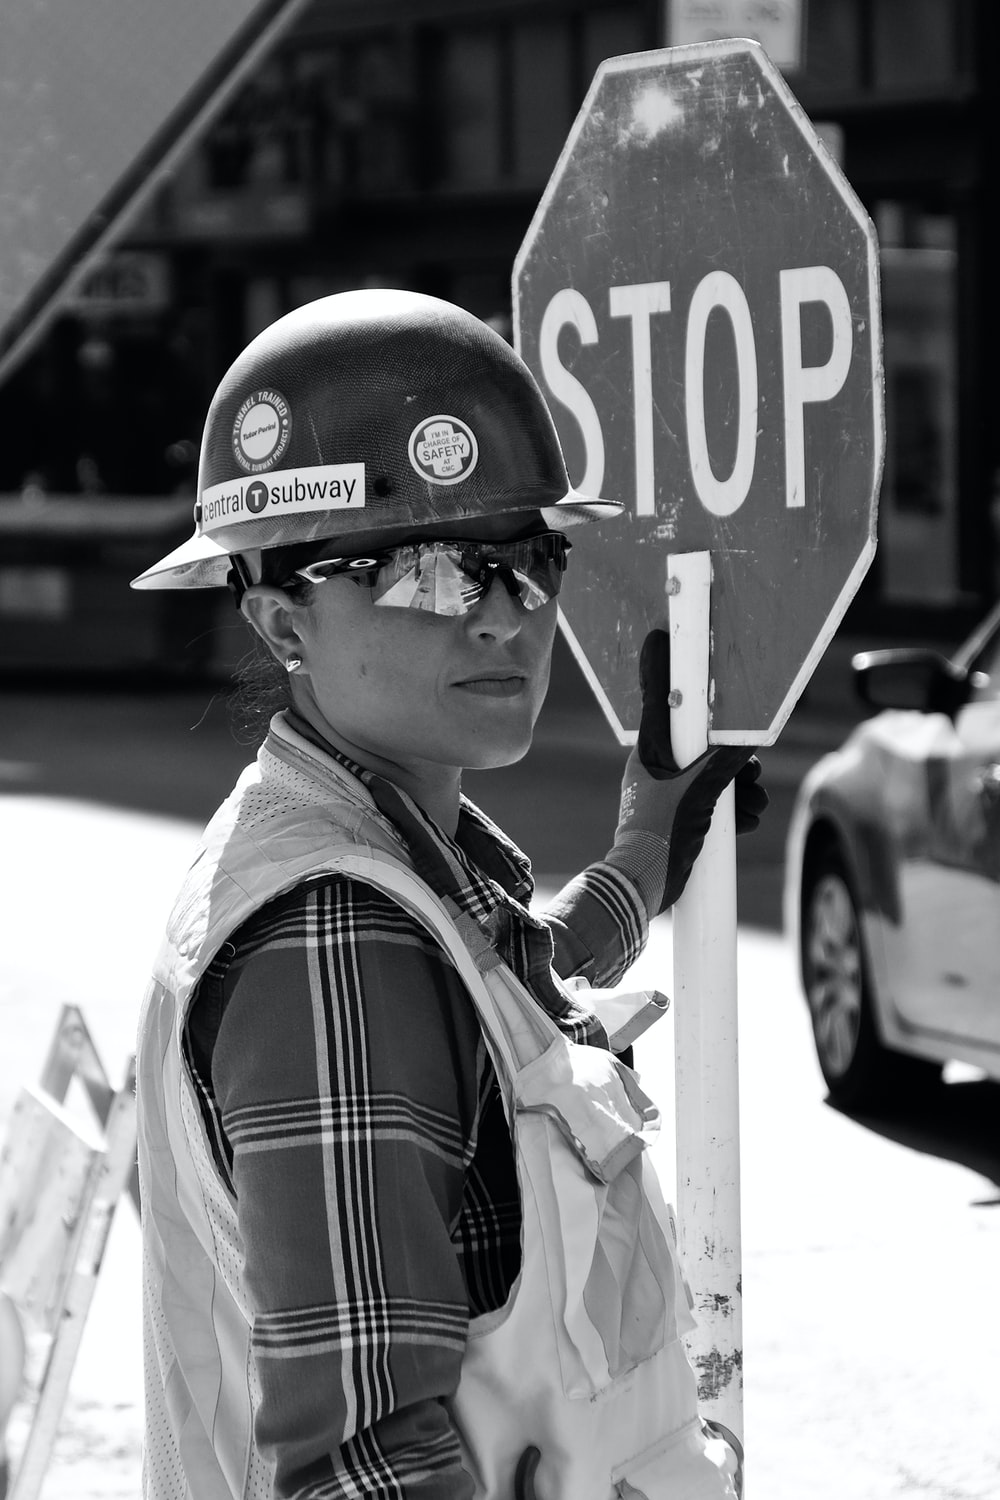 woman standing near the stop signage